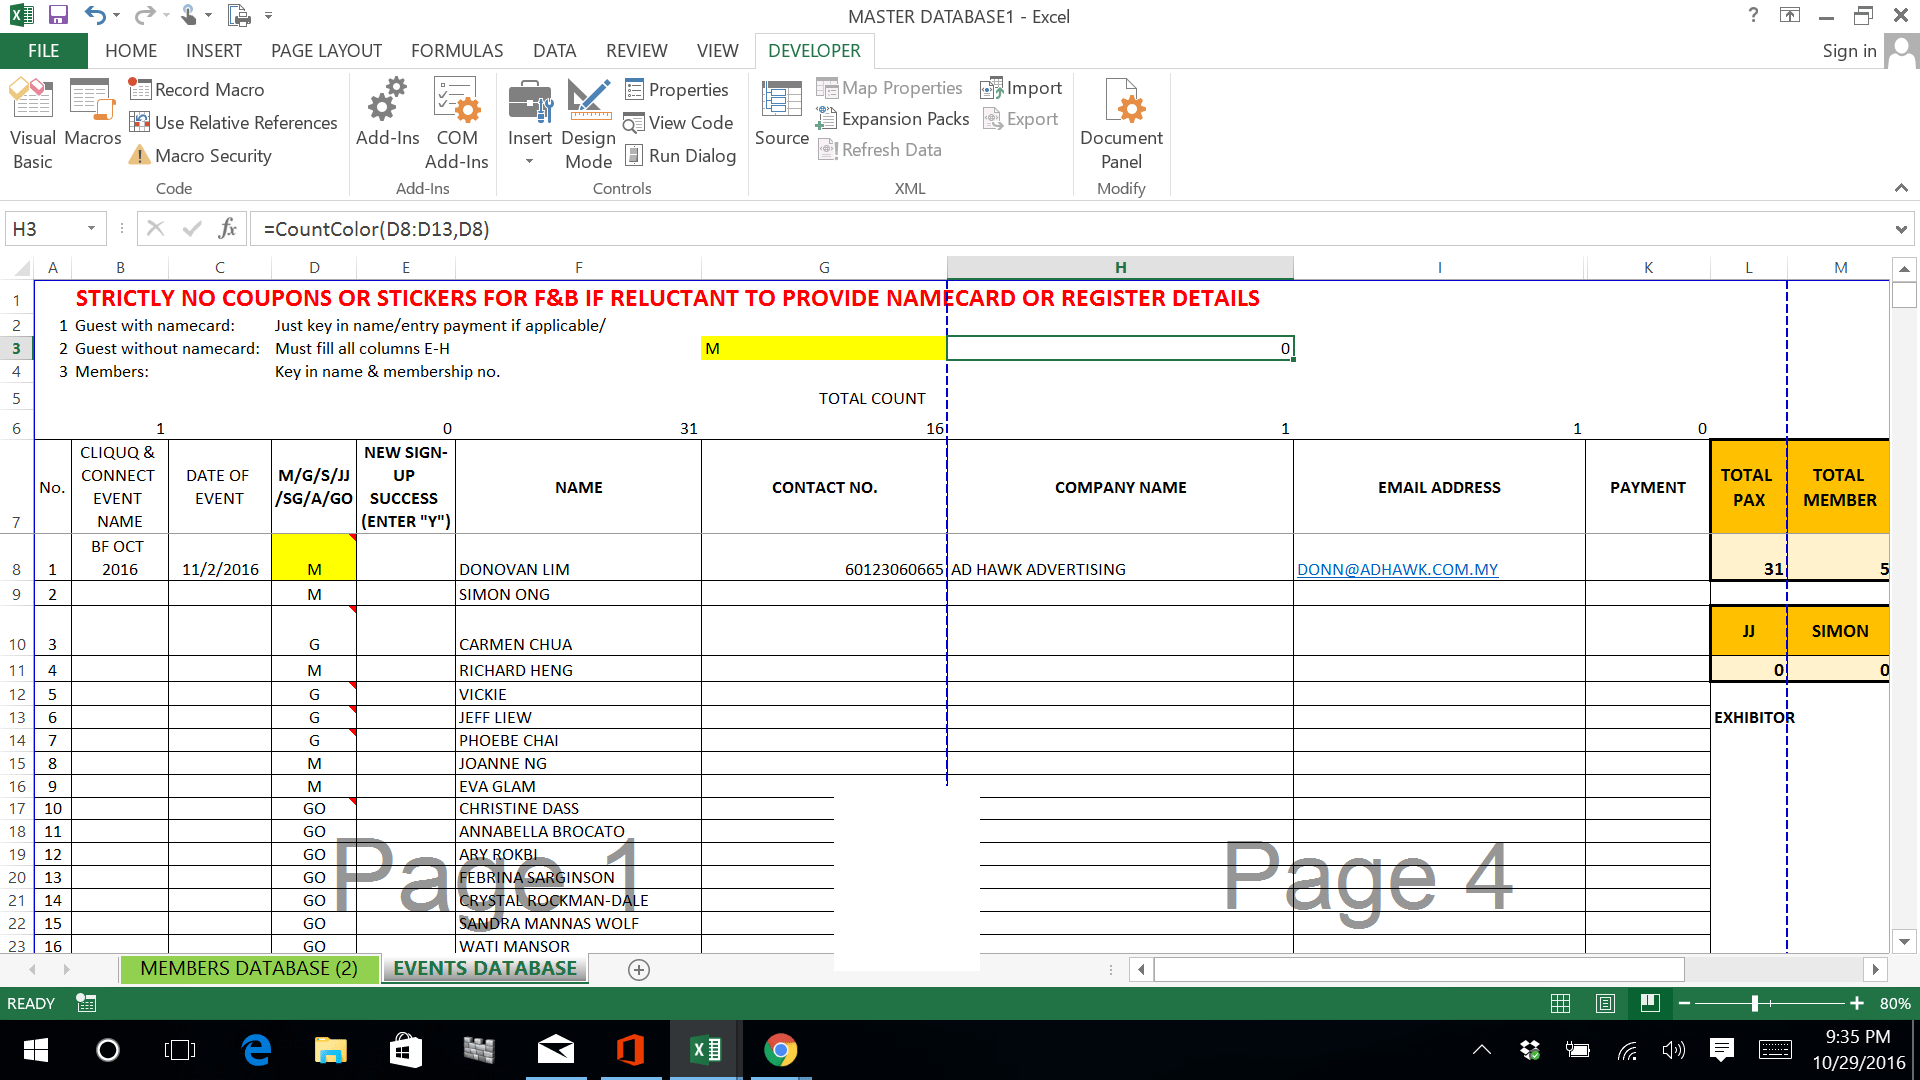 How To Count Colored Cells In Excel Step By Step Guide